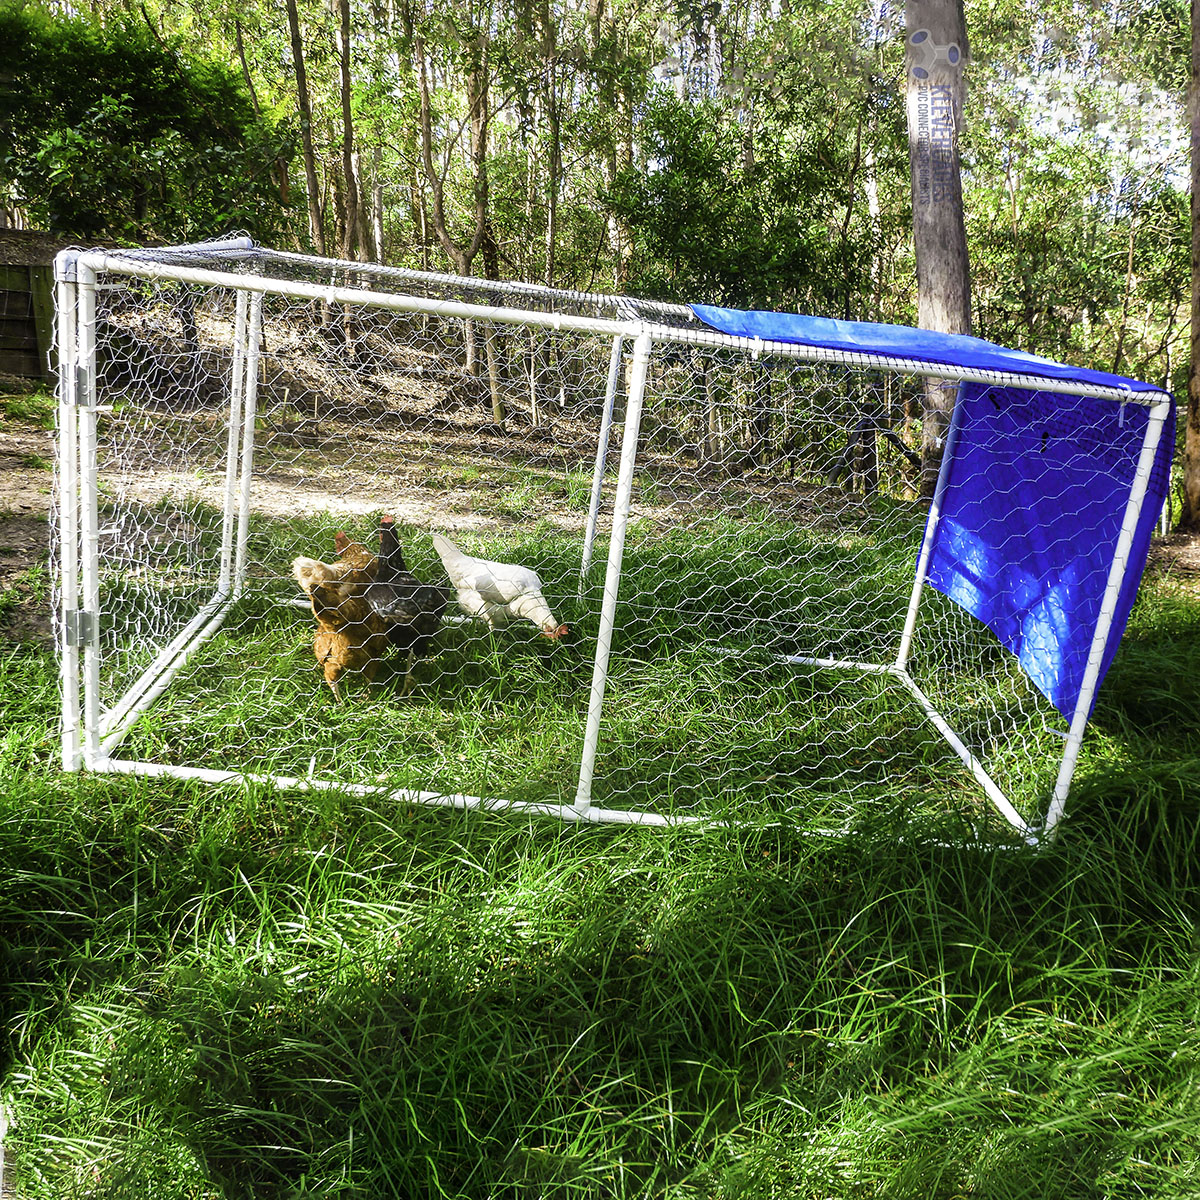 3 chickens enjoying long green grass while being safe and protected in a mobile chicken coop with a tarp as a cover for shelter